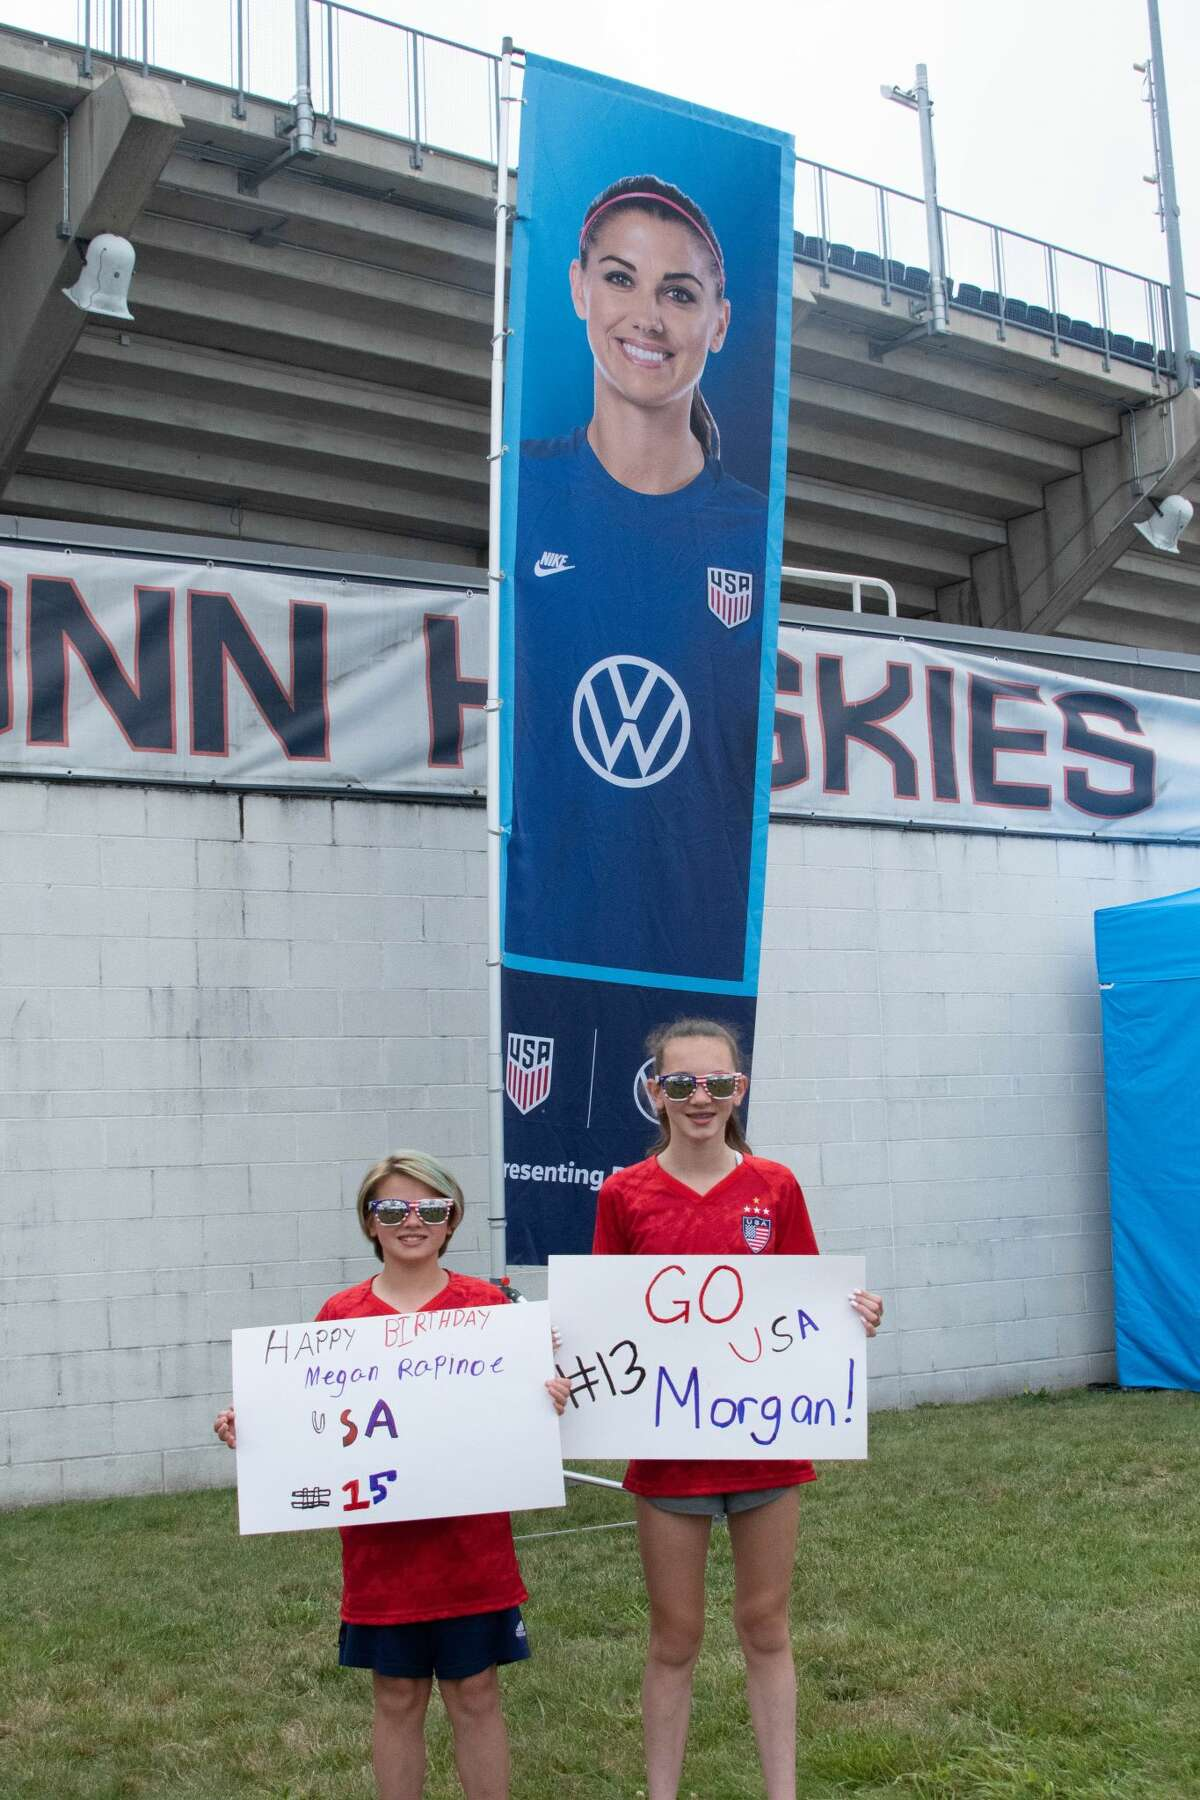 Kennedy, 9, and Myah Hovey, 12, of Cohoes at the US Women's Soccer National Team game at Pratt & Whitney Stadium in East Hartford, Conn. during a Send-Off Series match against Mexico on Monday, July 5, 2021. The U.S. won 4-0 over Mexico. (Joyce Bassett / Special to the Times Union)